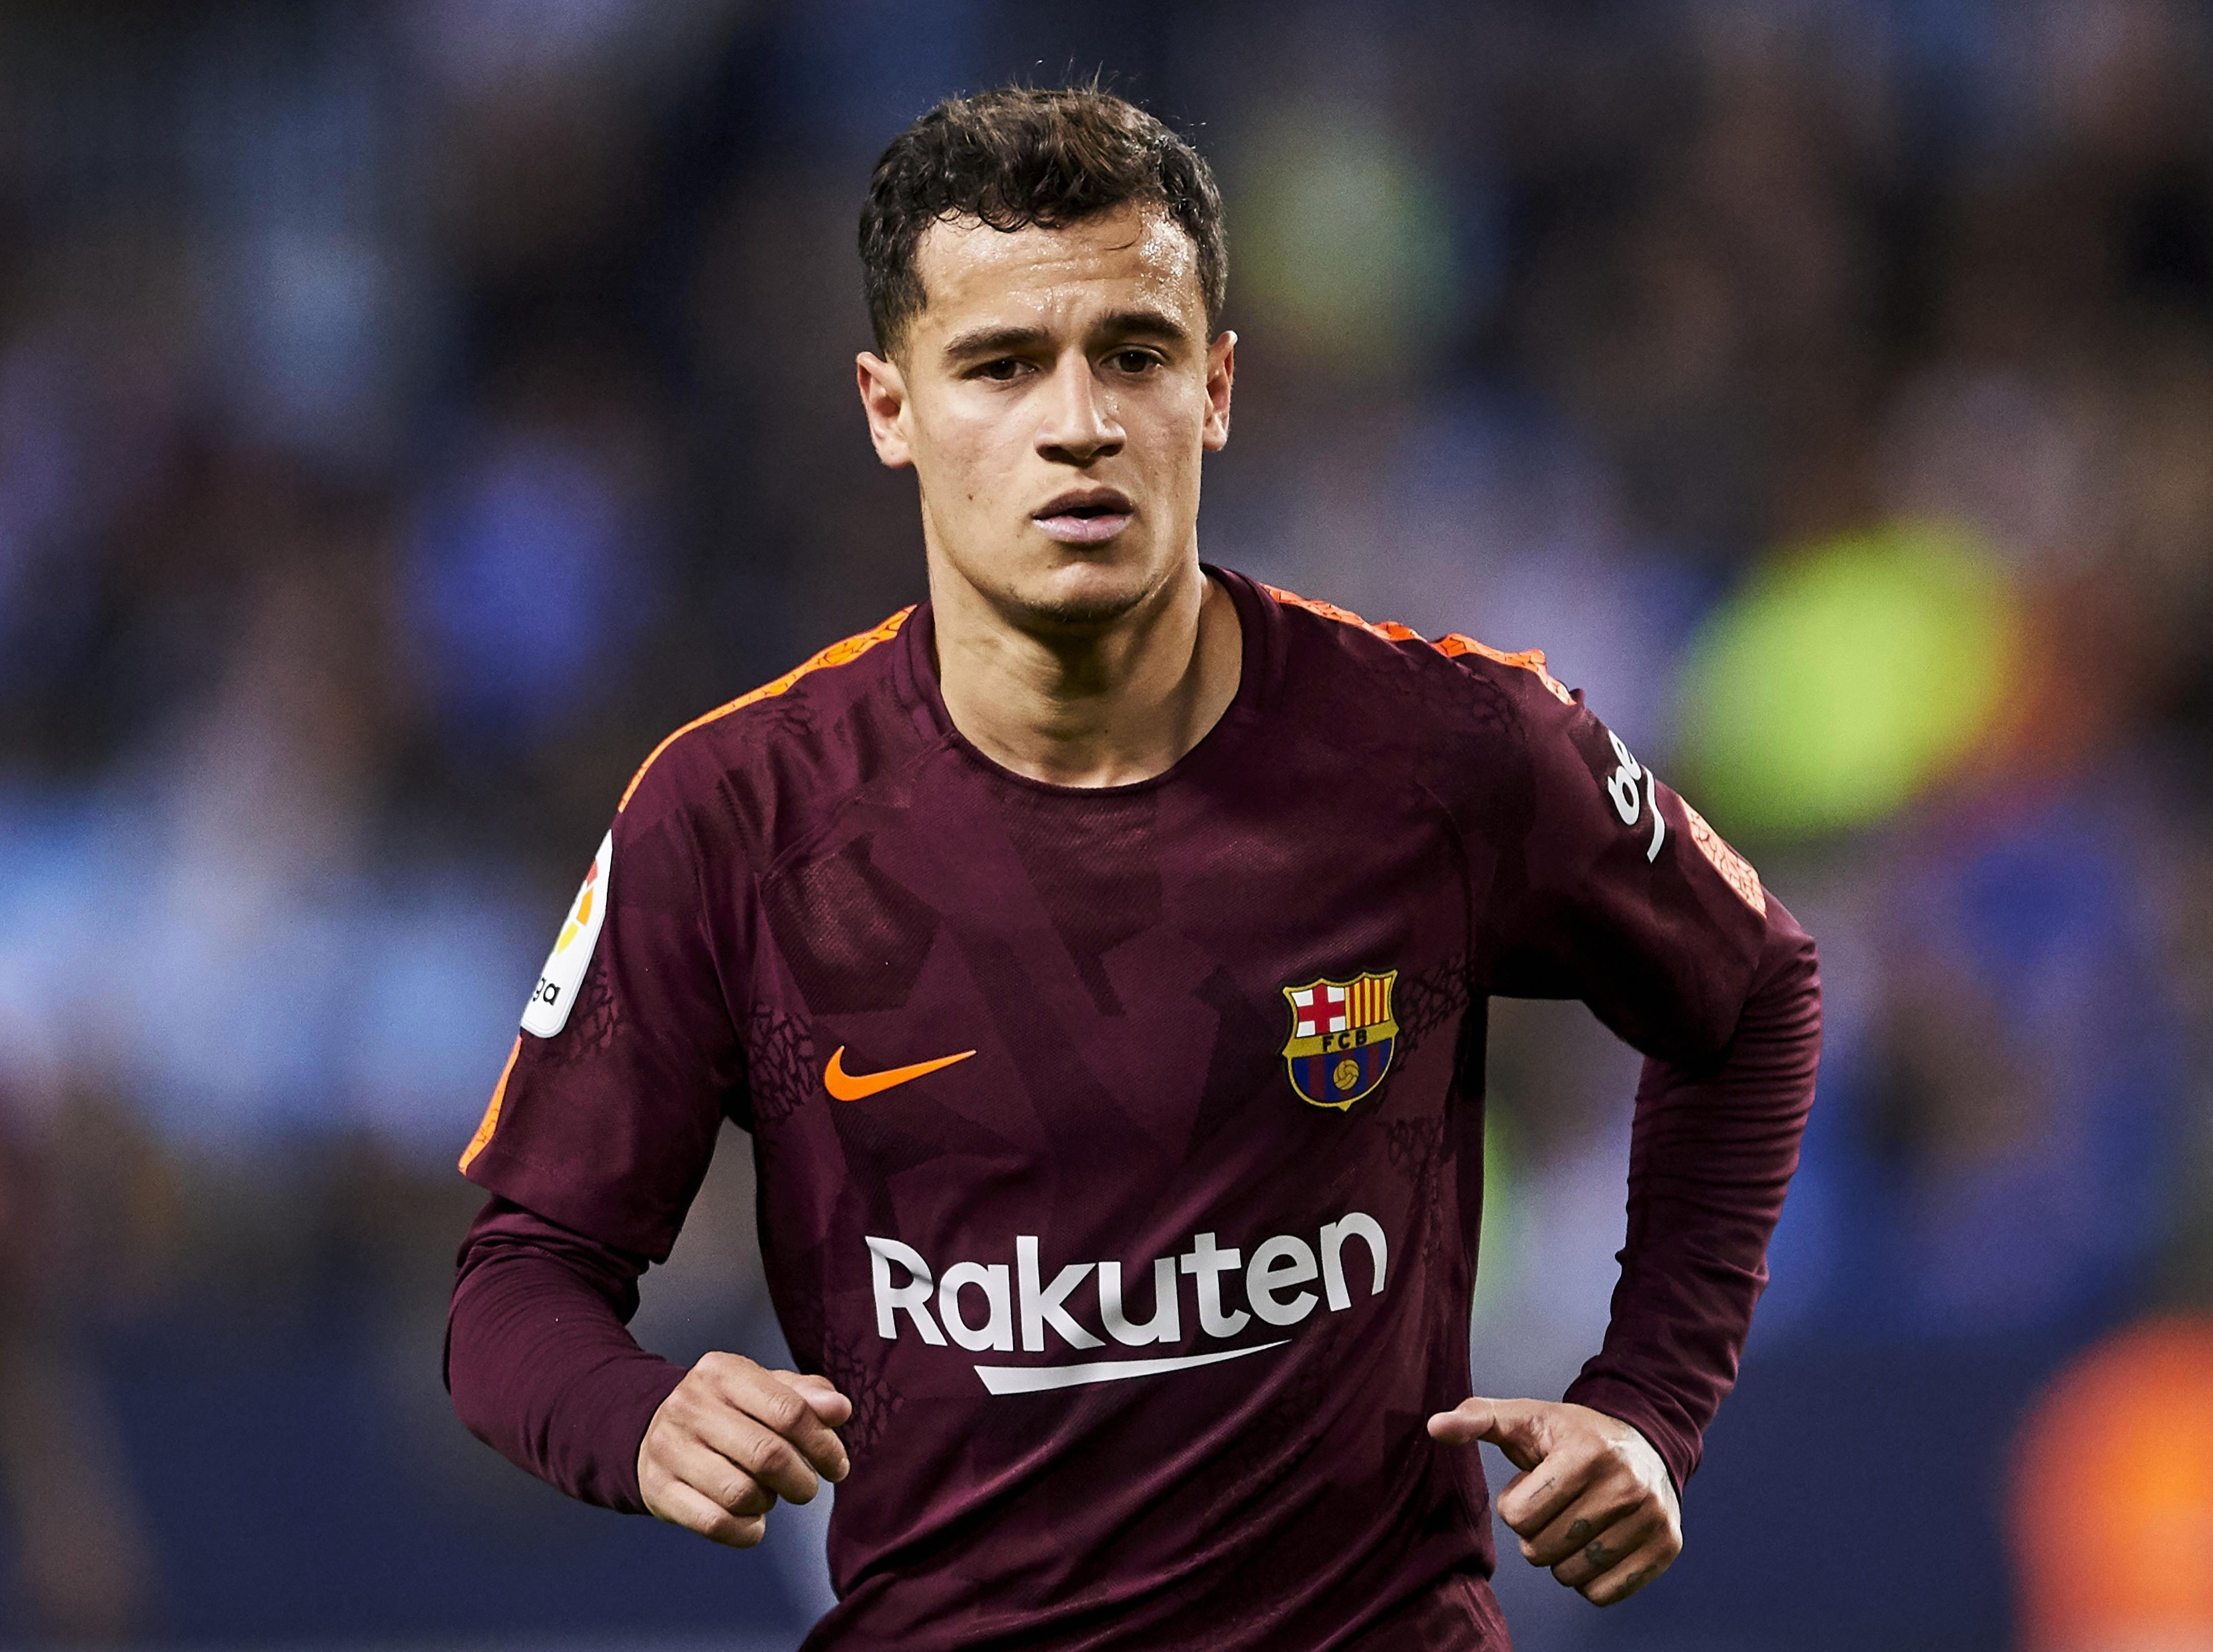 Liverpool still owe Vasco da Gama £3.5m for Barcelona star Philippe Coutinho